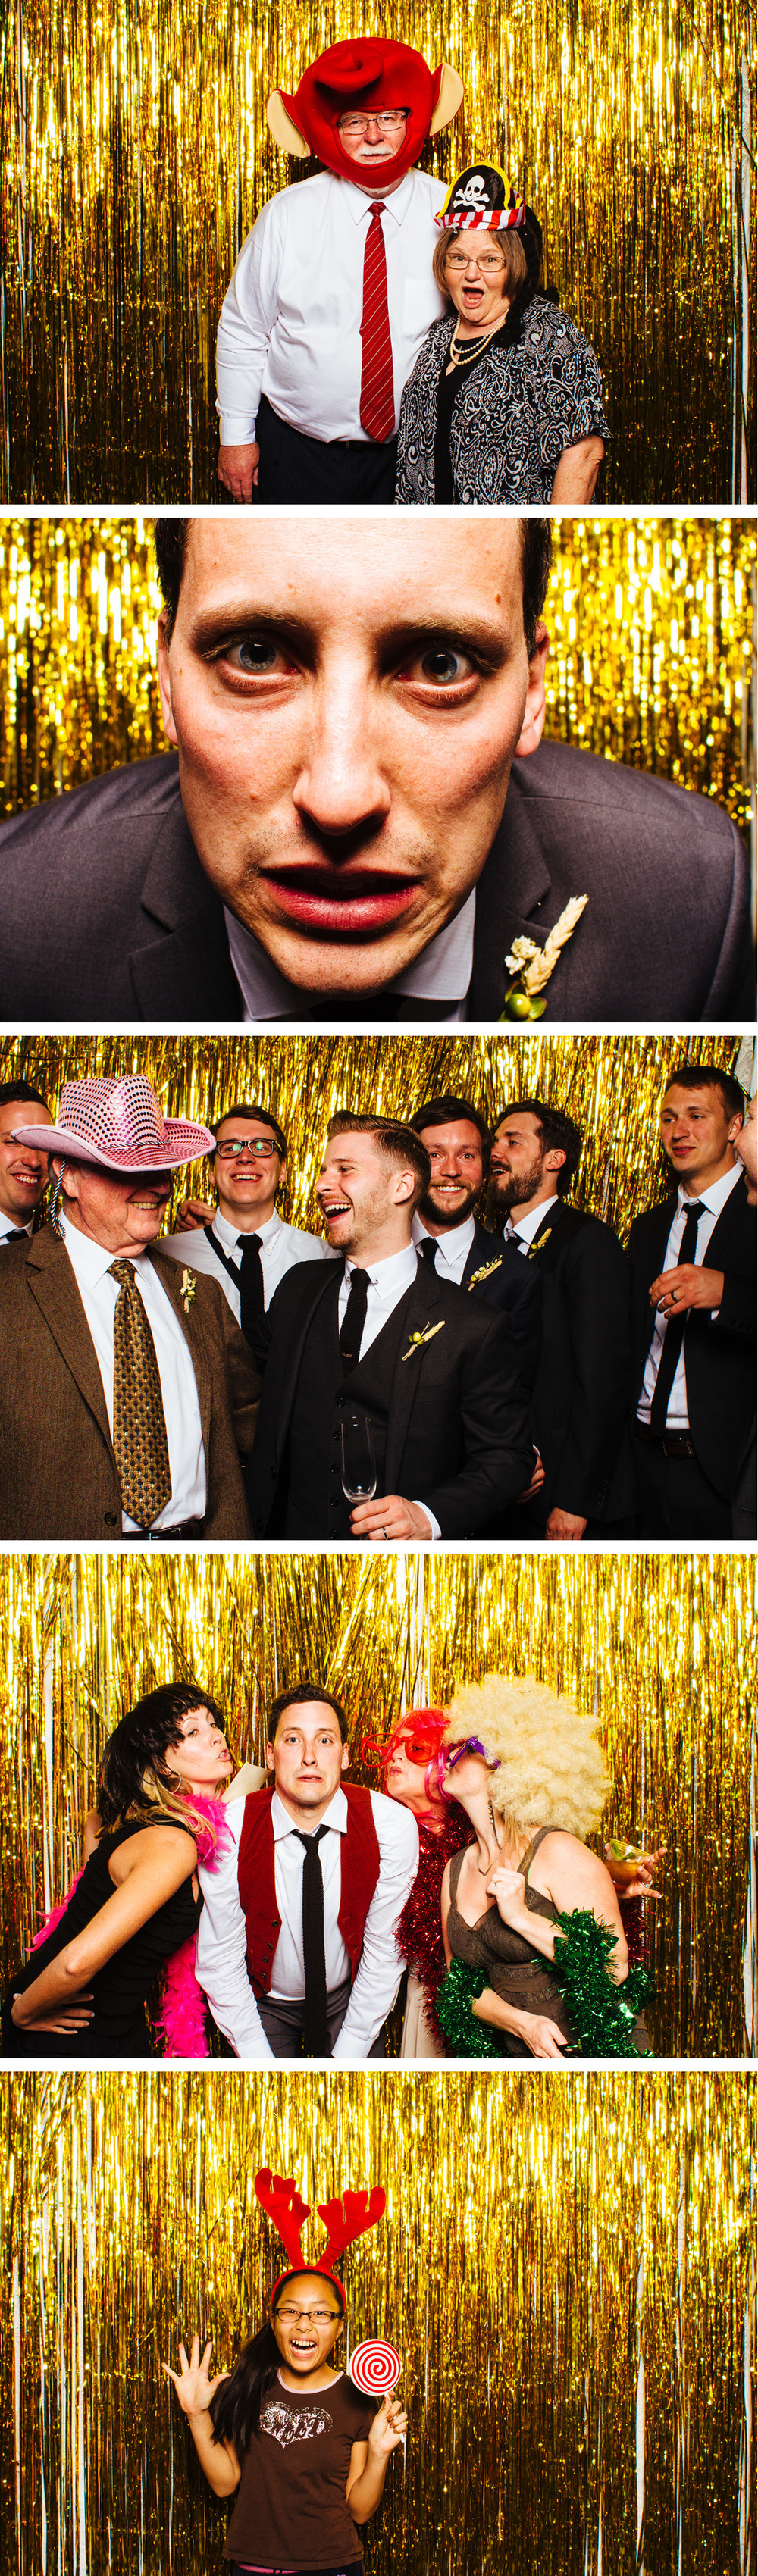 CK-Photo-Nashville-Wedding-Photographer-Photobooth-DL5.jpg